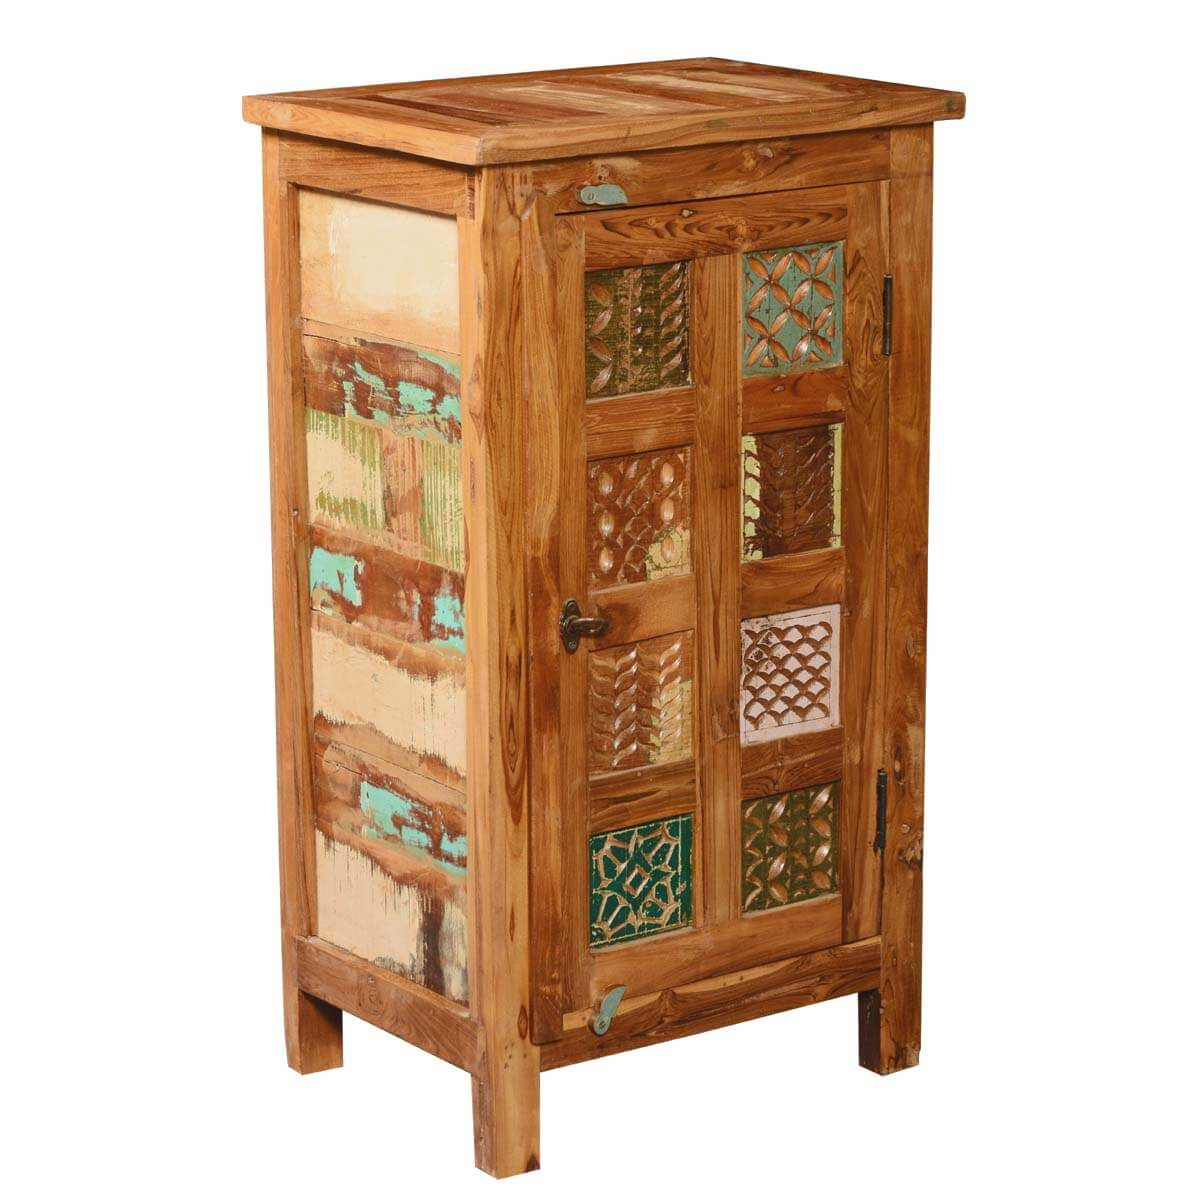 Appalachian Patch Quilt Reclaimed Wood Kitchen Cupboard